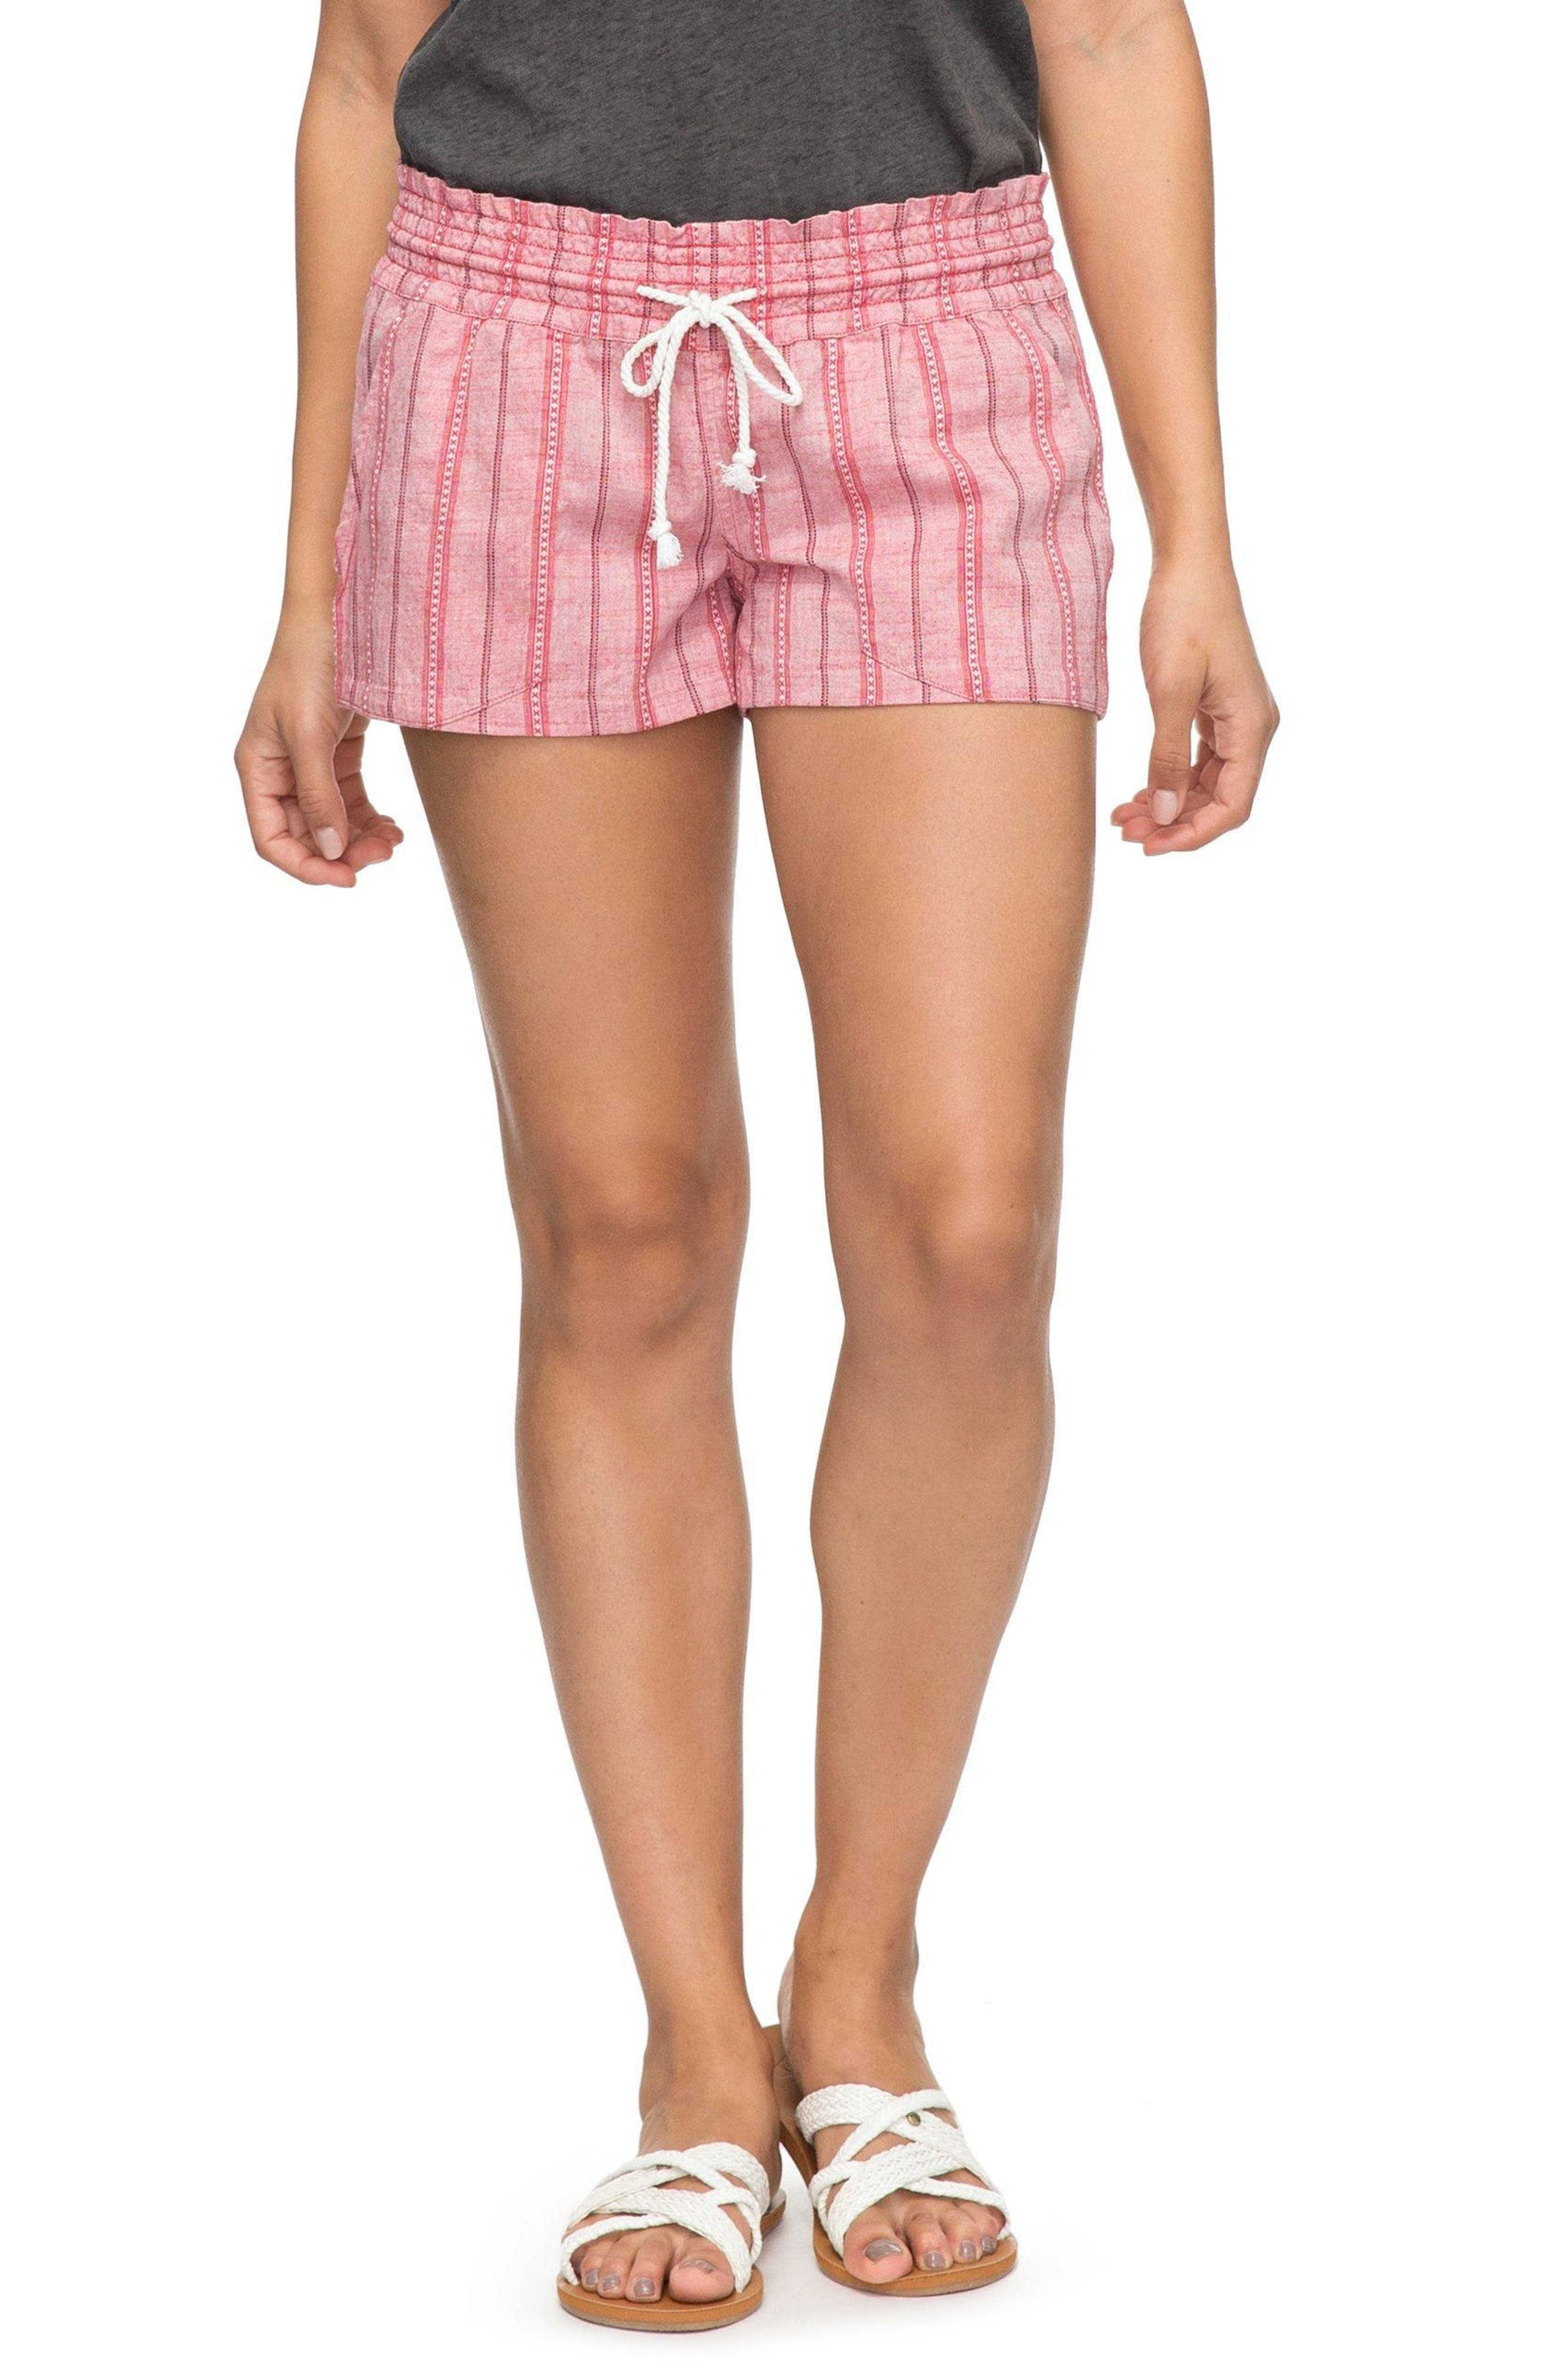 Oceanside Beach Shorts,                         Main,                         color, Holly Berry South Border